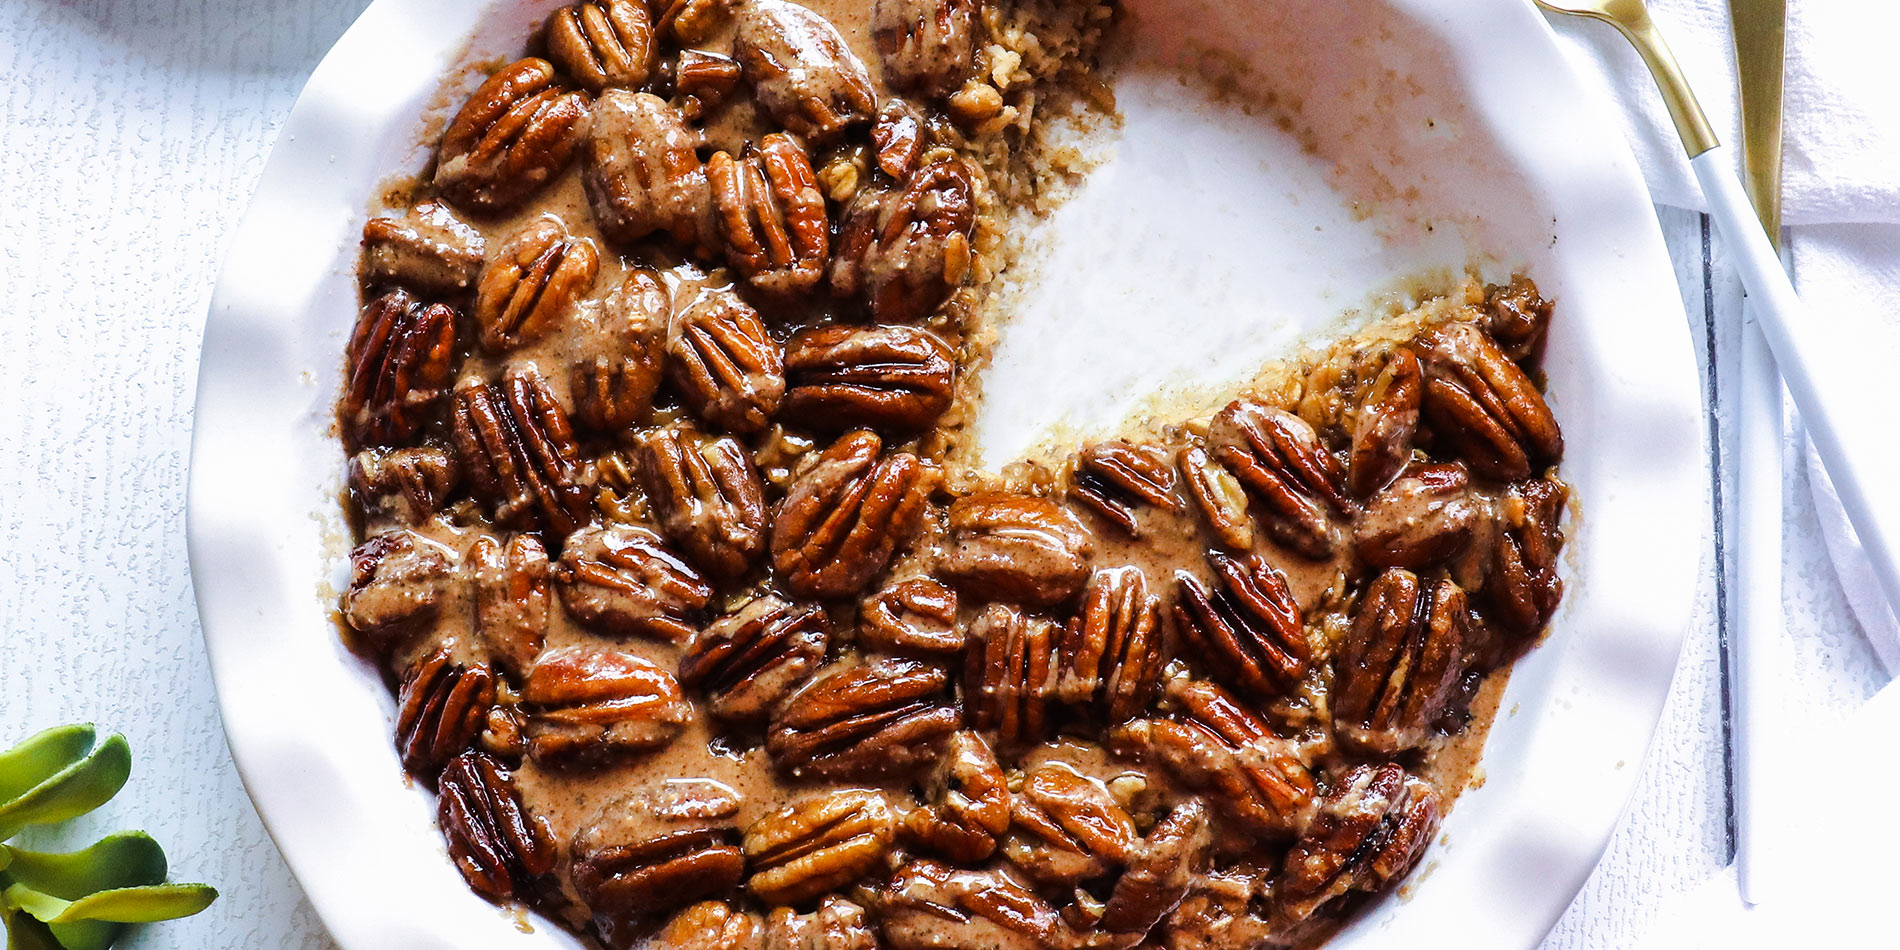 Pecan Pie Baked Oatmeal with Cinnamon Almond Butter in a white bowl with a slice cut out on separate dish on white background